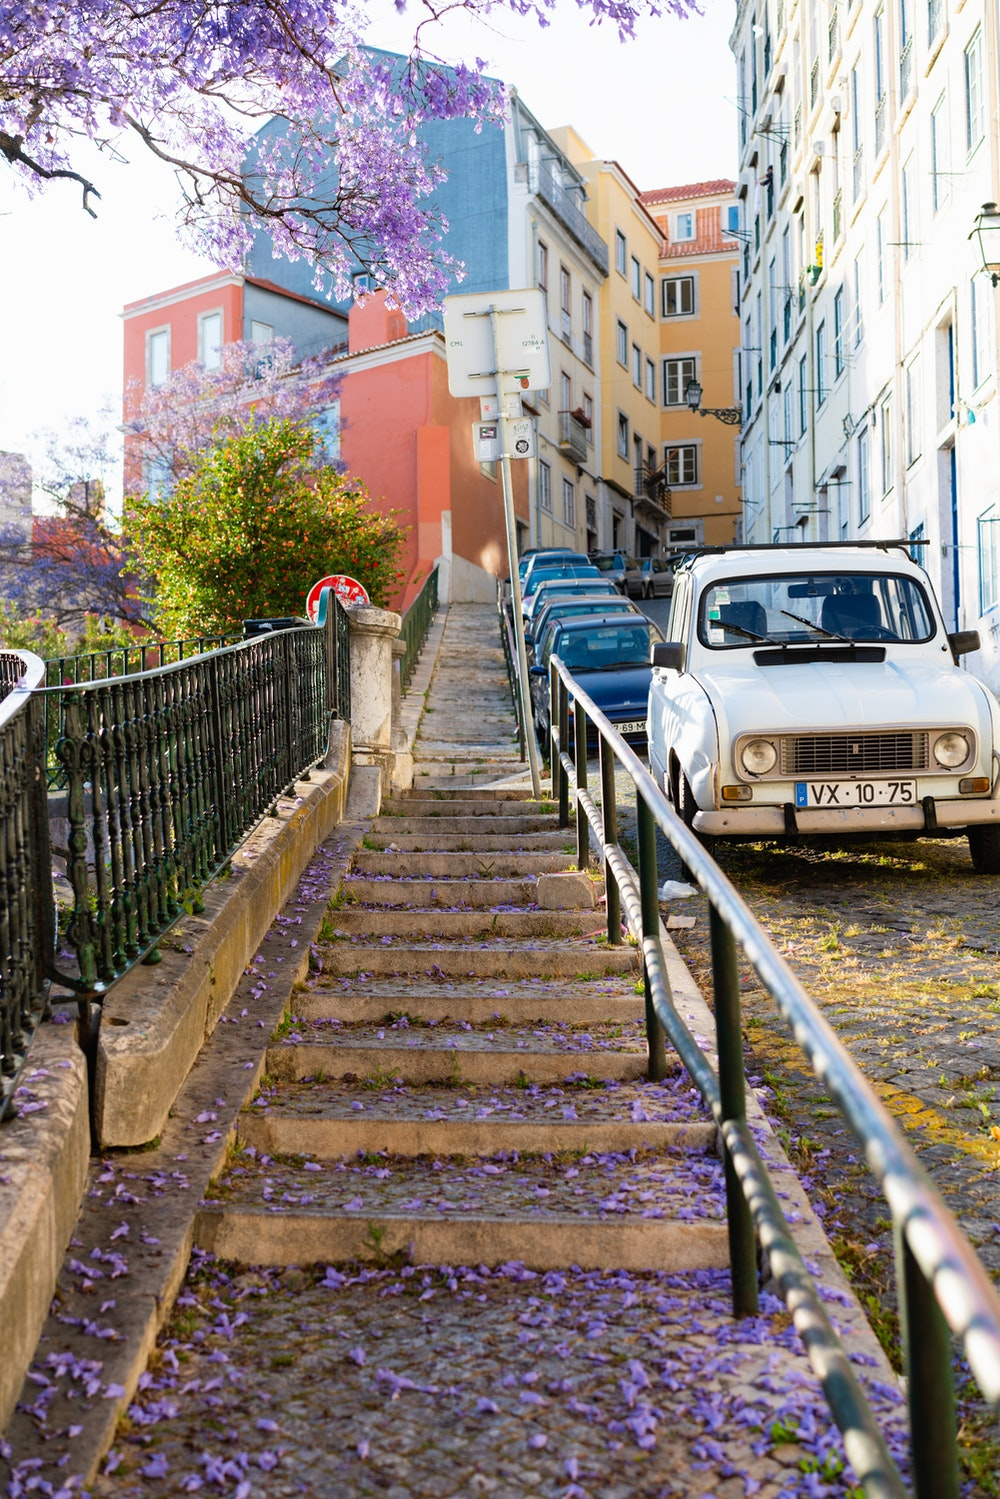 Stairs that go uphill to the Alfama district in Lisbon, Portugal